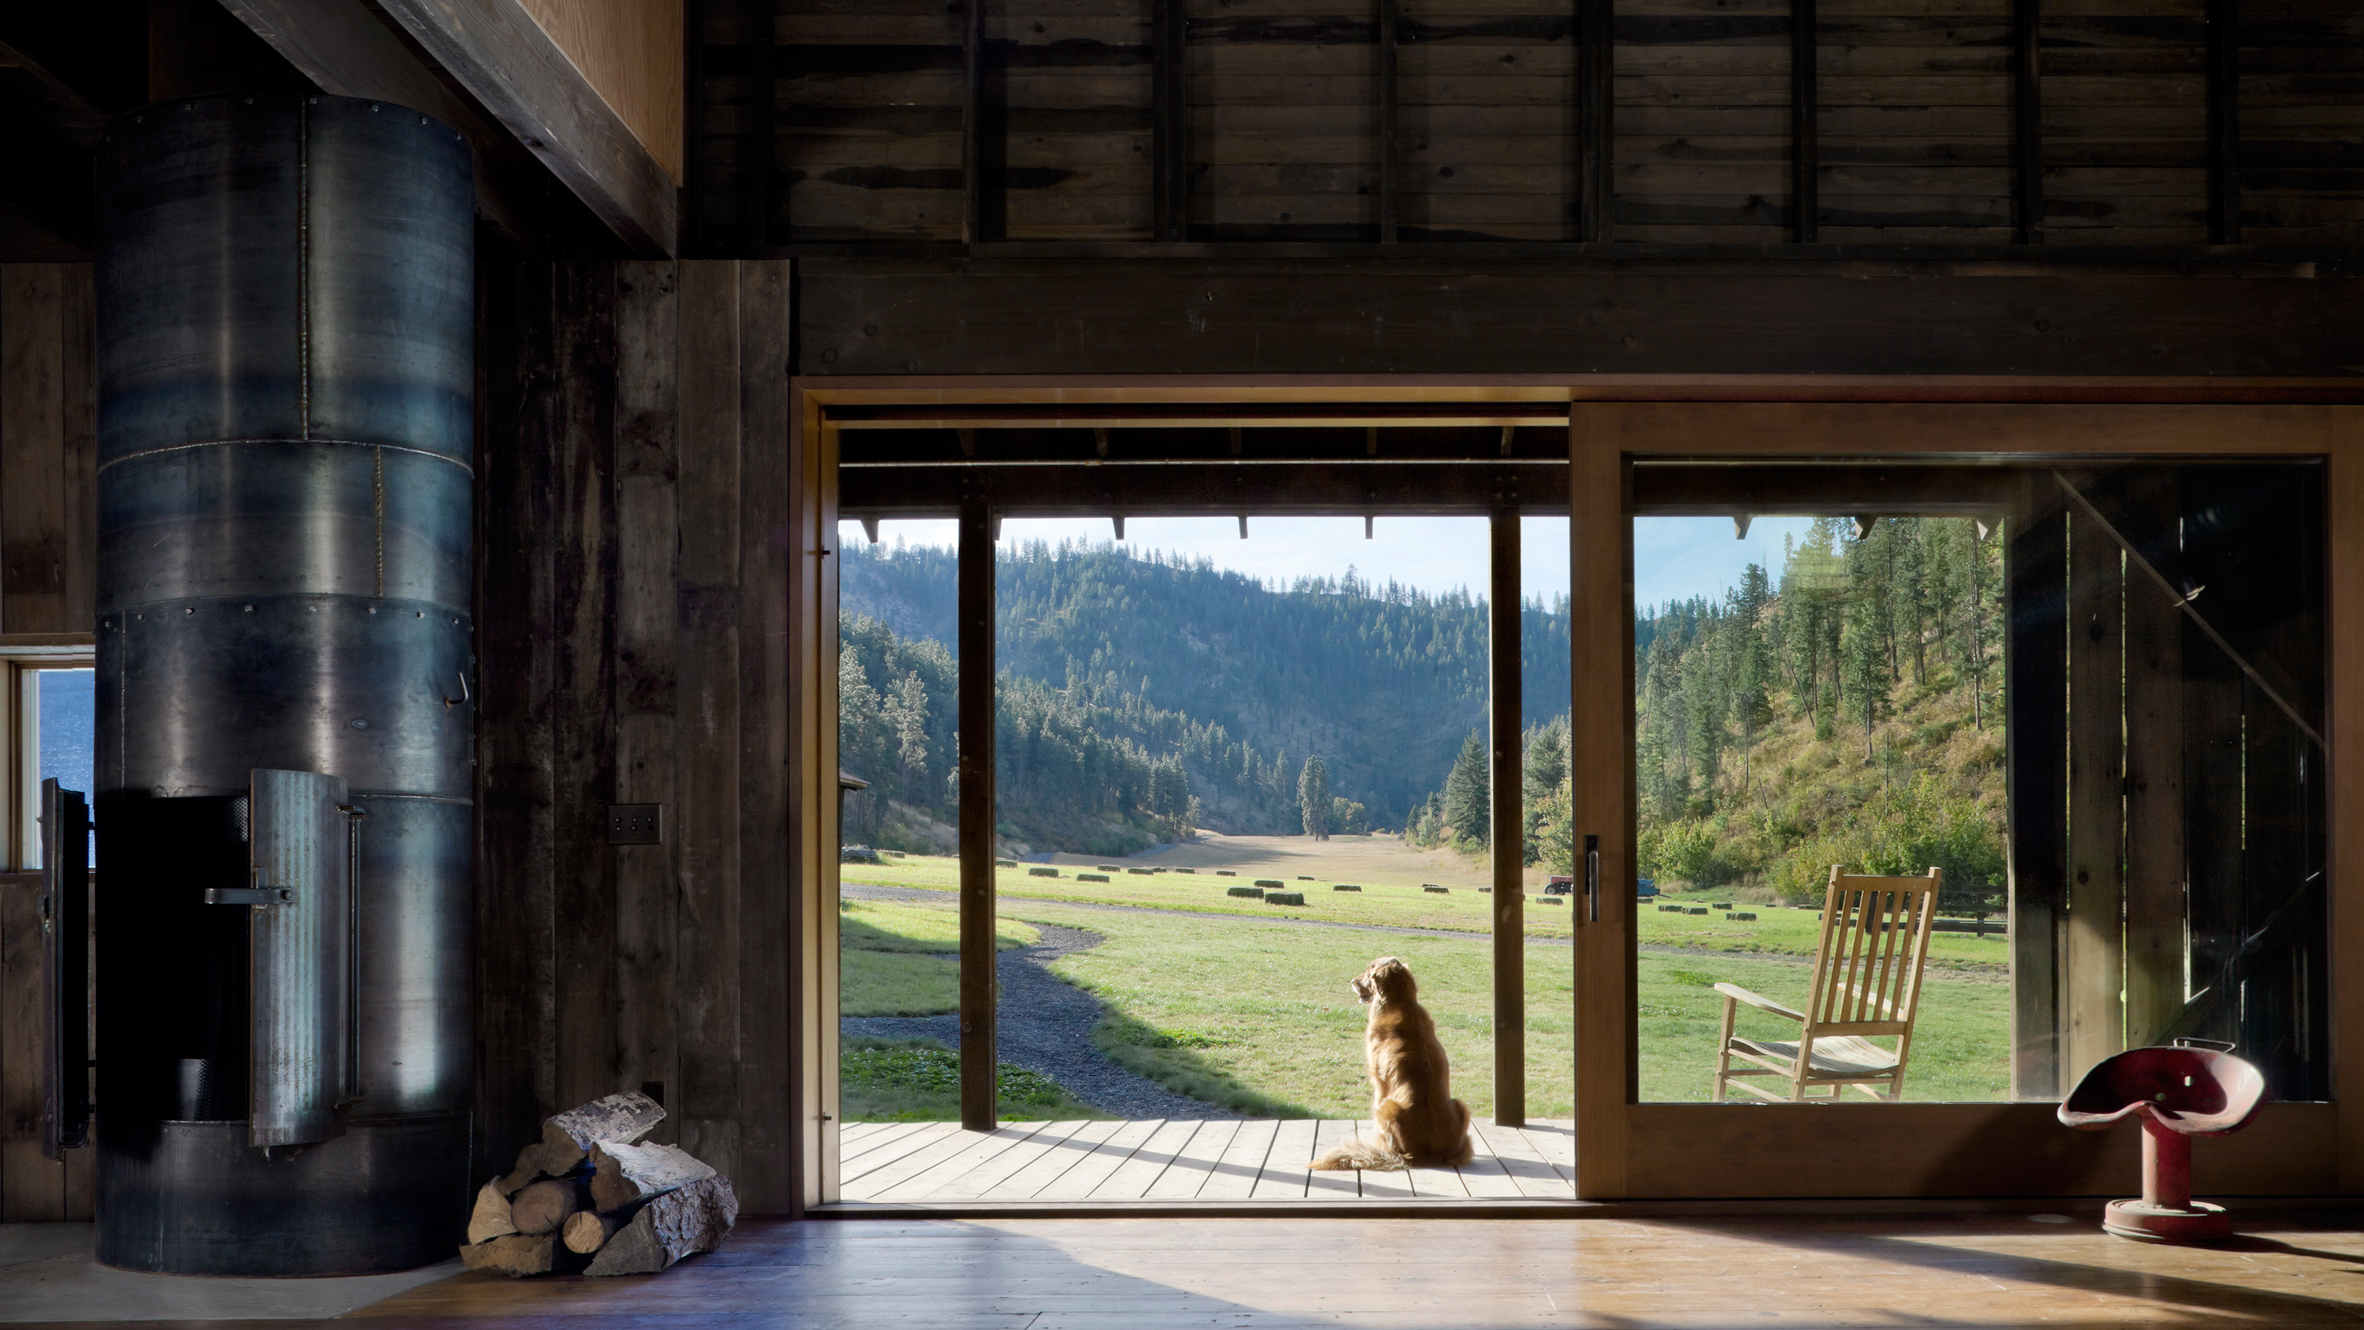 A dog sits in the doorway of a converted barn, facing away from the viewer and looking out a green, forested landscape.